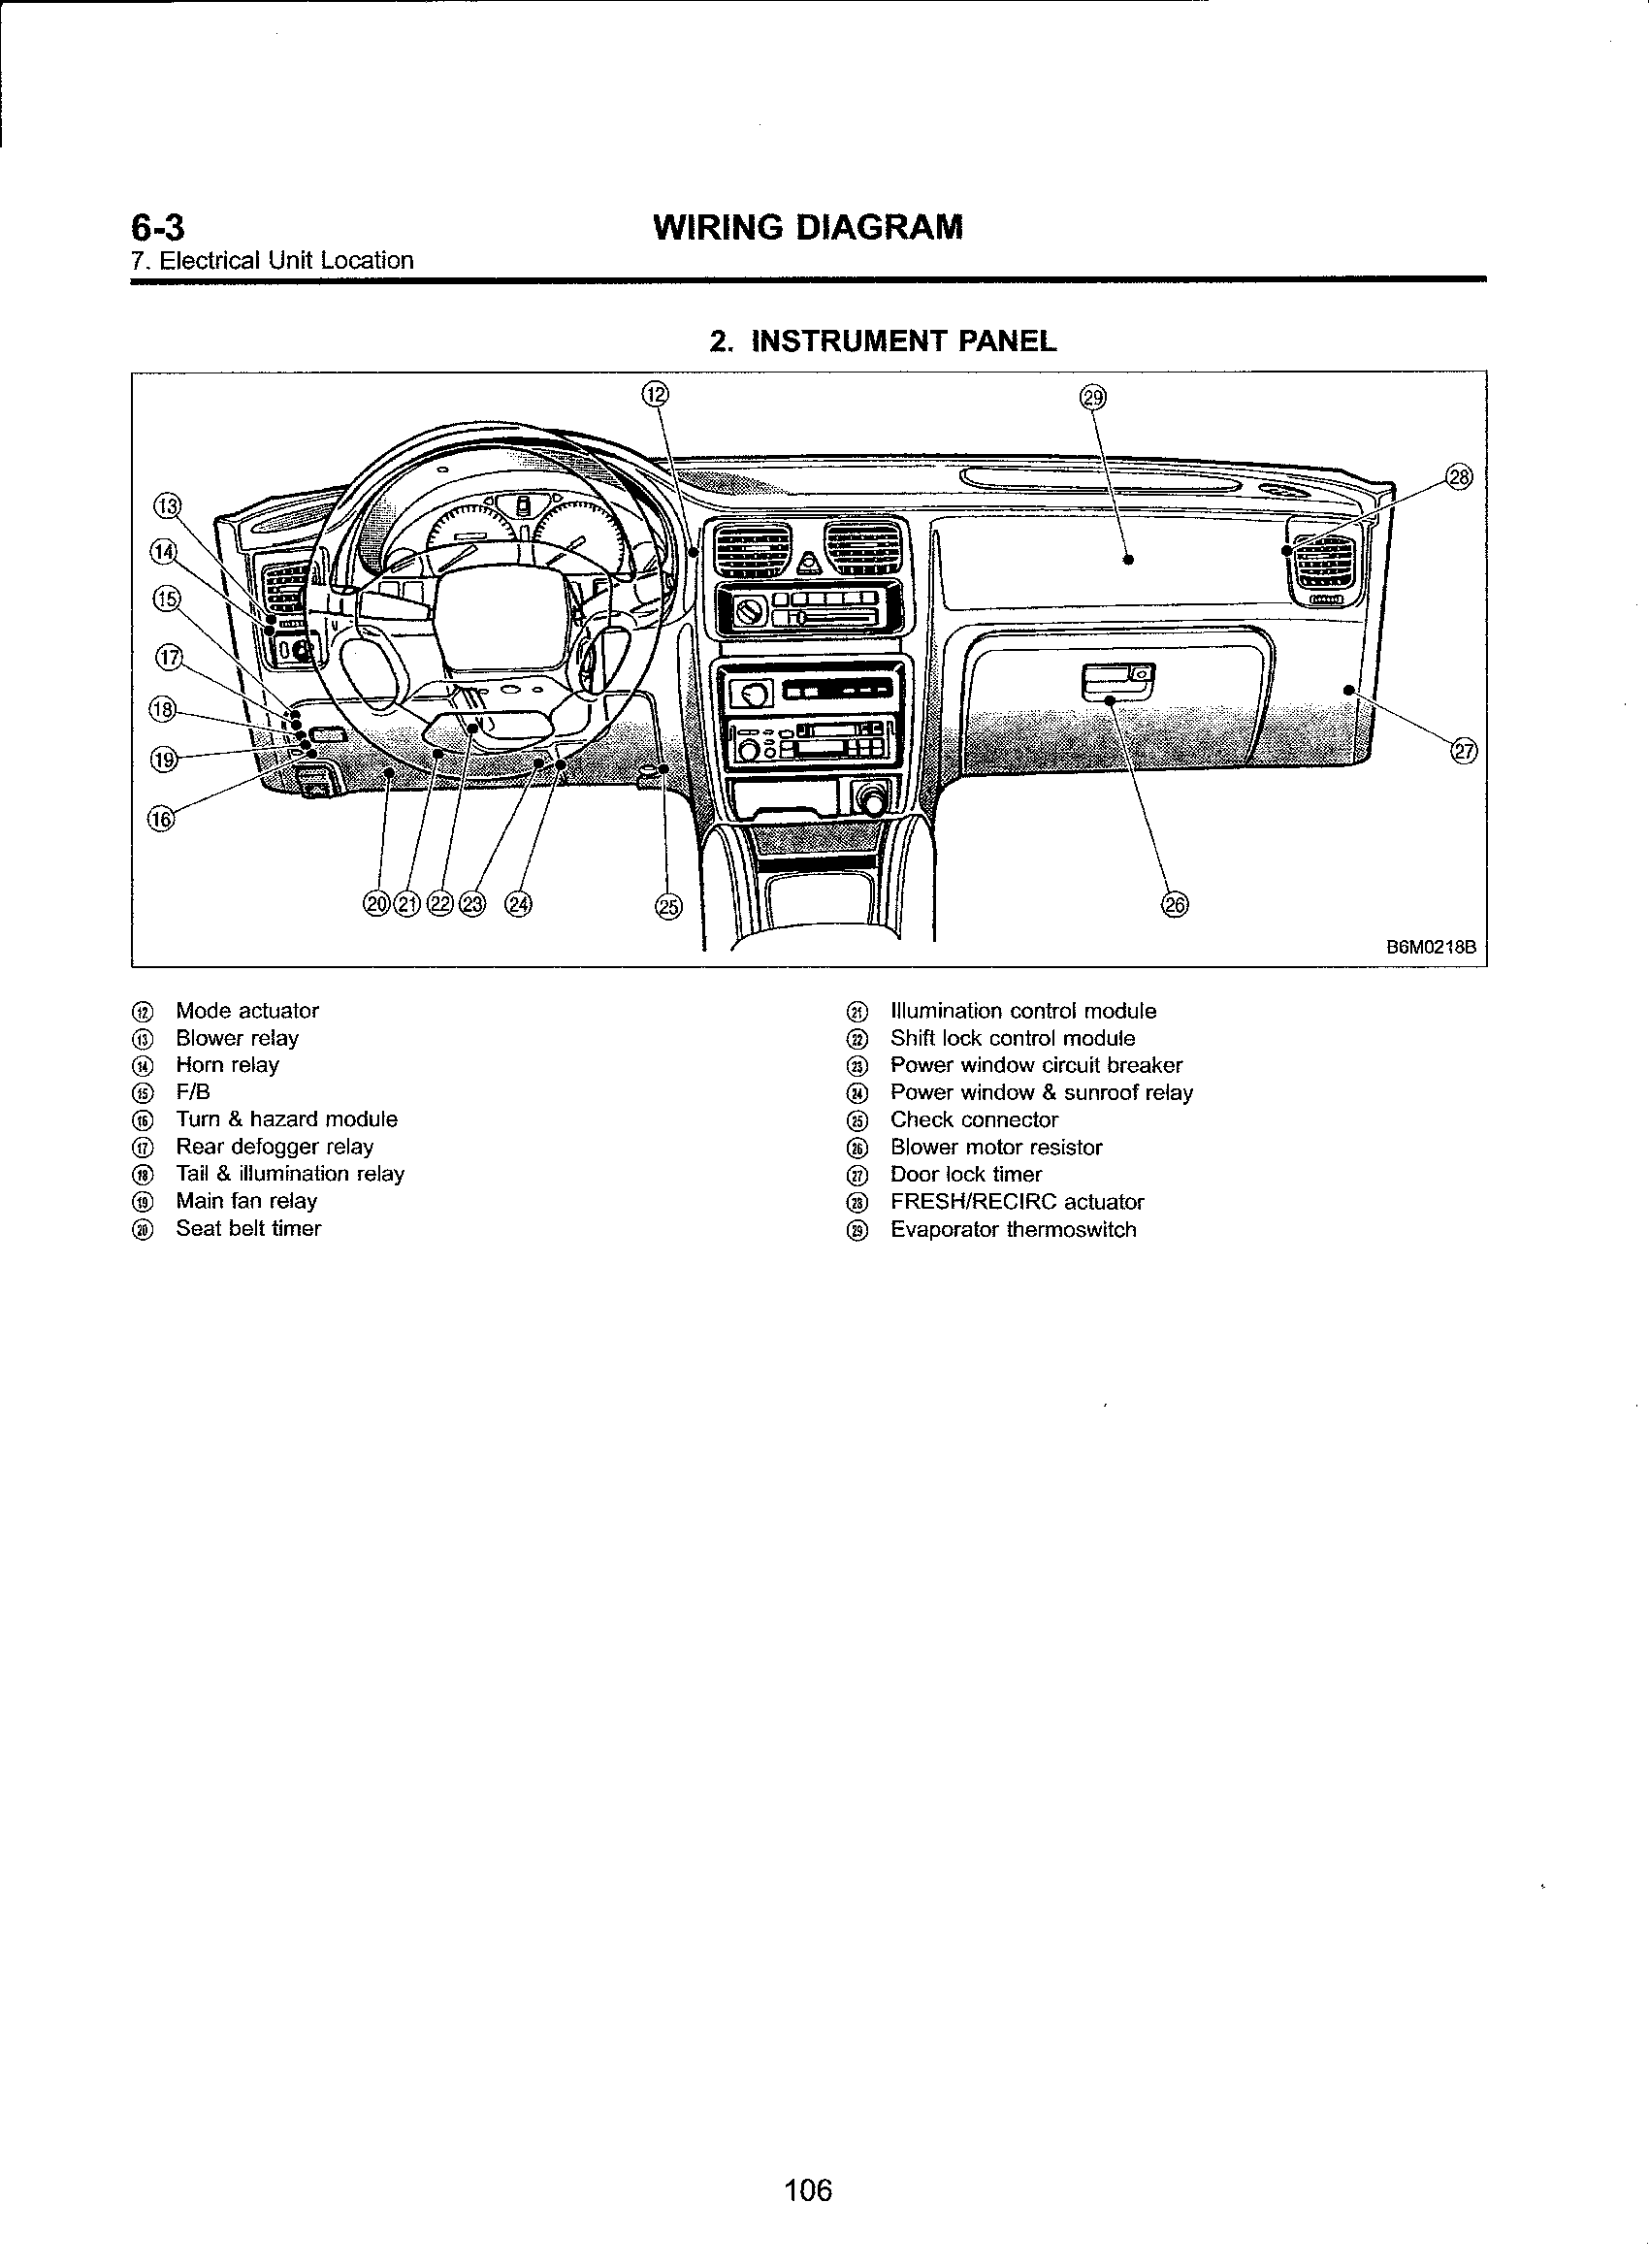 1995 mazda b2300 alternator wiring diagram mazda b2300